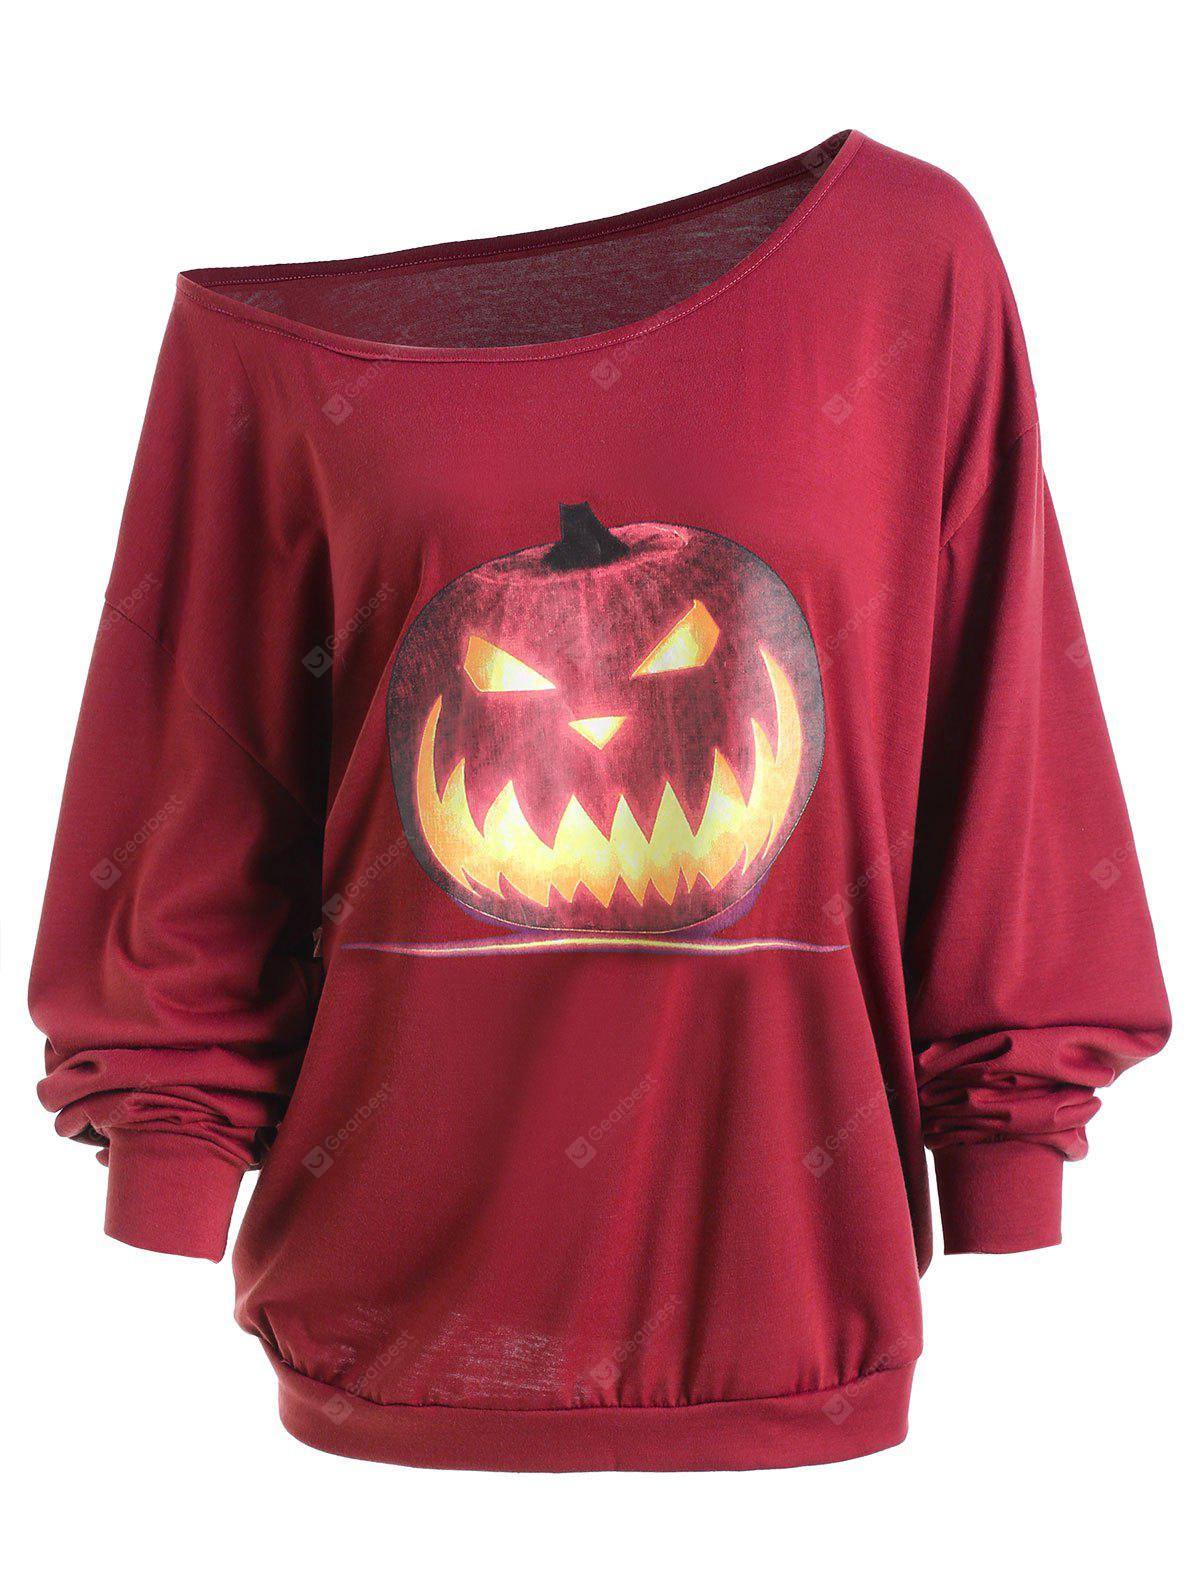 WINE RED XL Plus Size Halloween Angry Pumpkin Skew Neck Tee